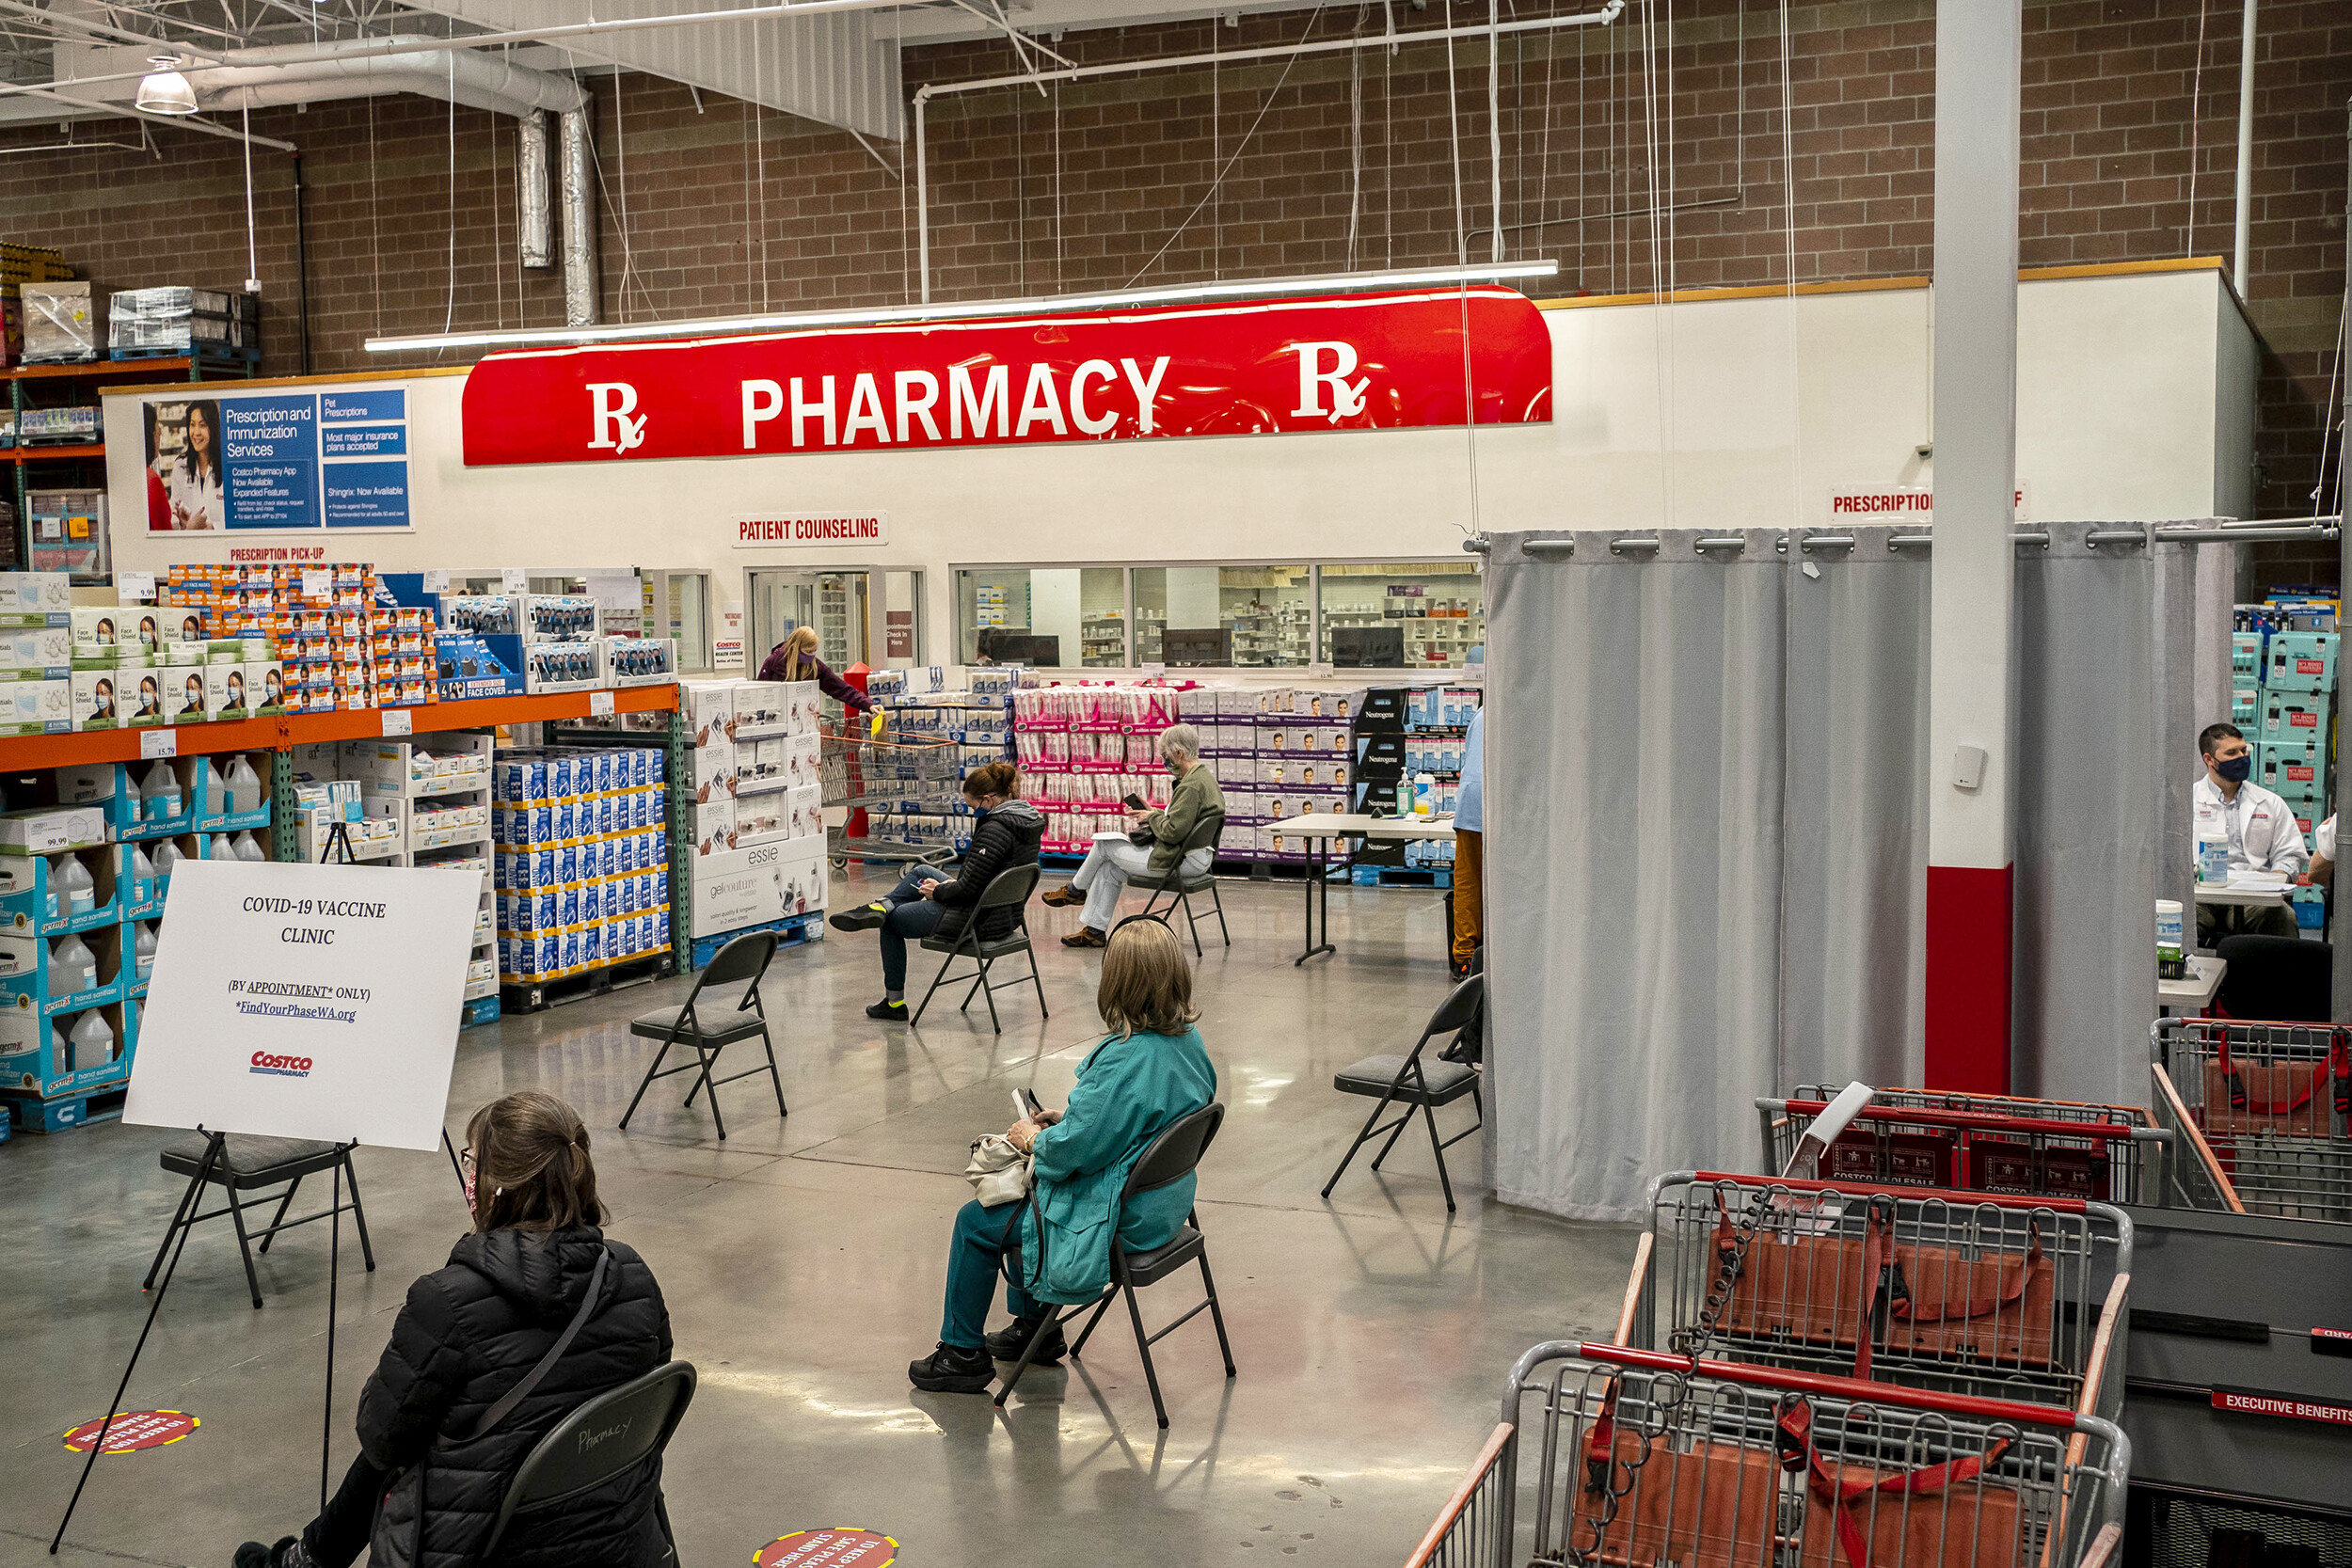 Costco approach could have saved Medicare $2.6 billion in drug spending, analysis shows